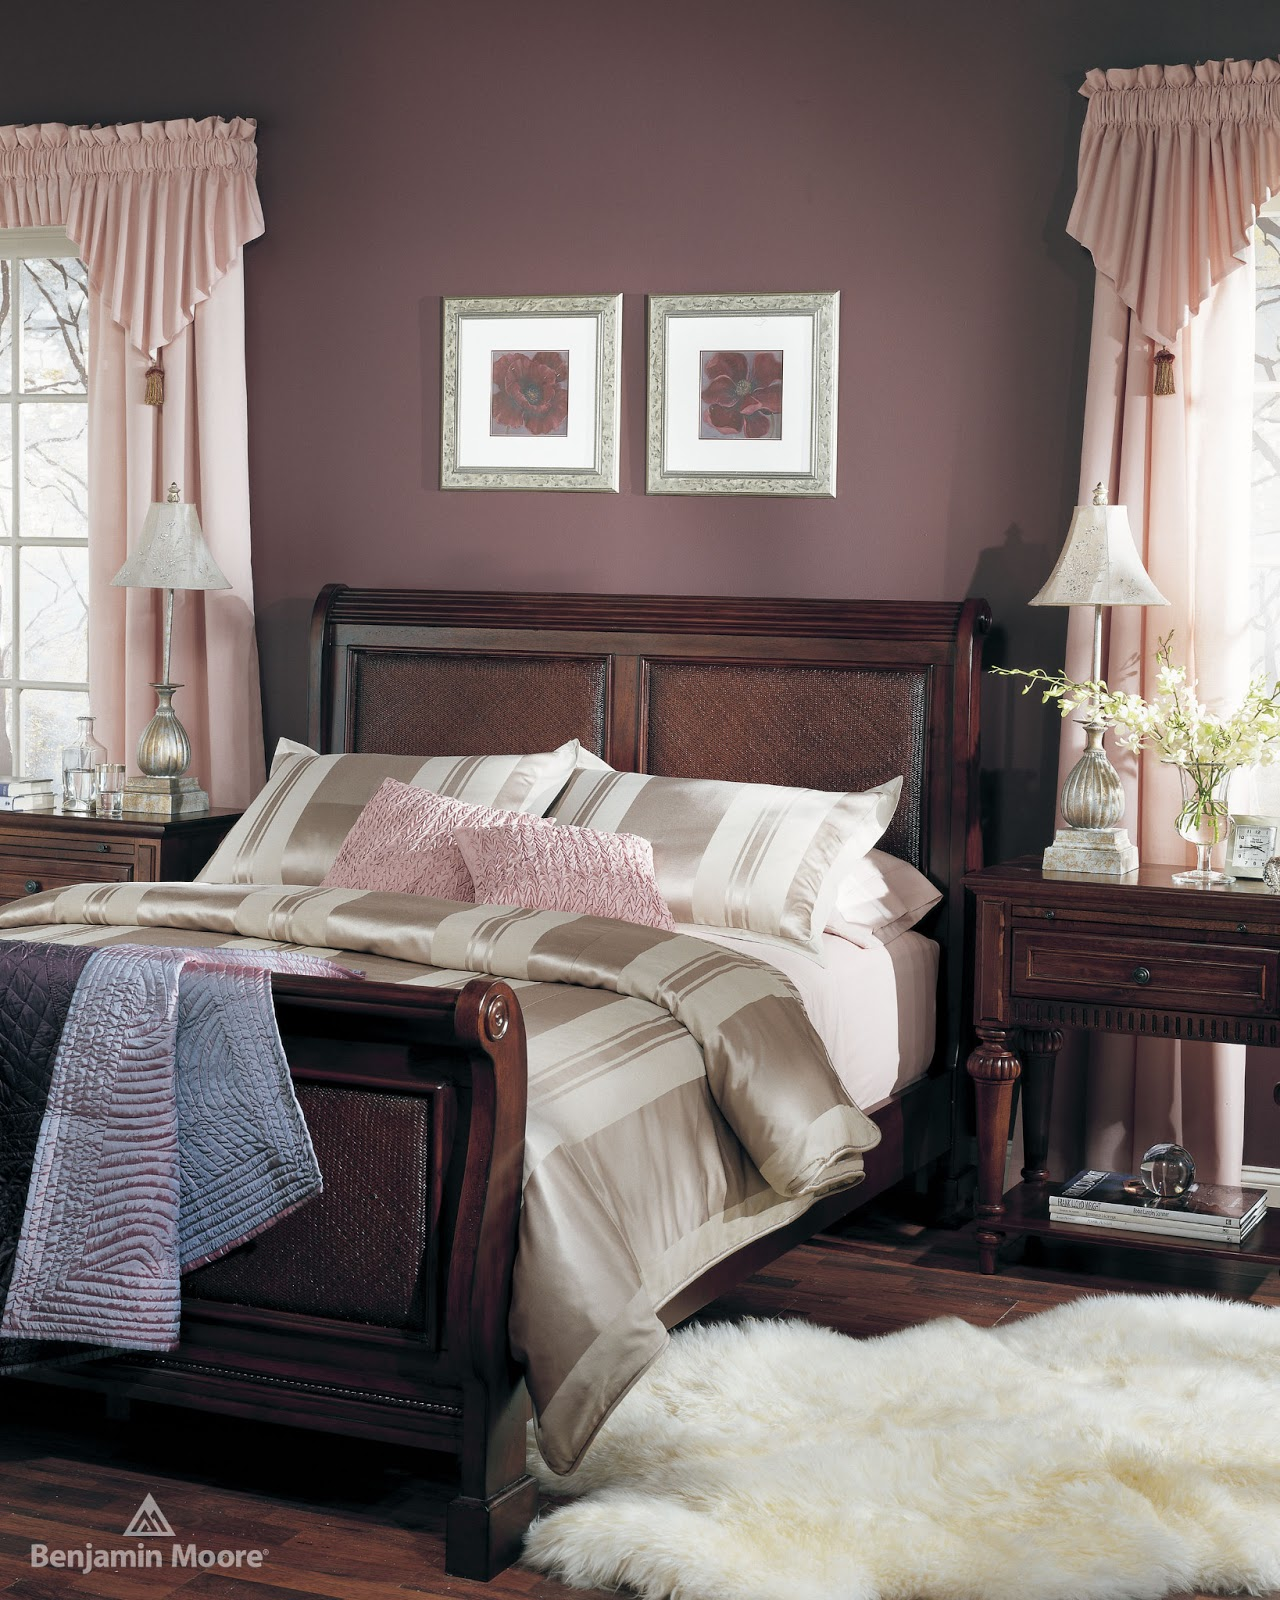 Benjamin Moore: Factory Paint & Decorating: Benjamin Moore Regal Select